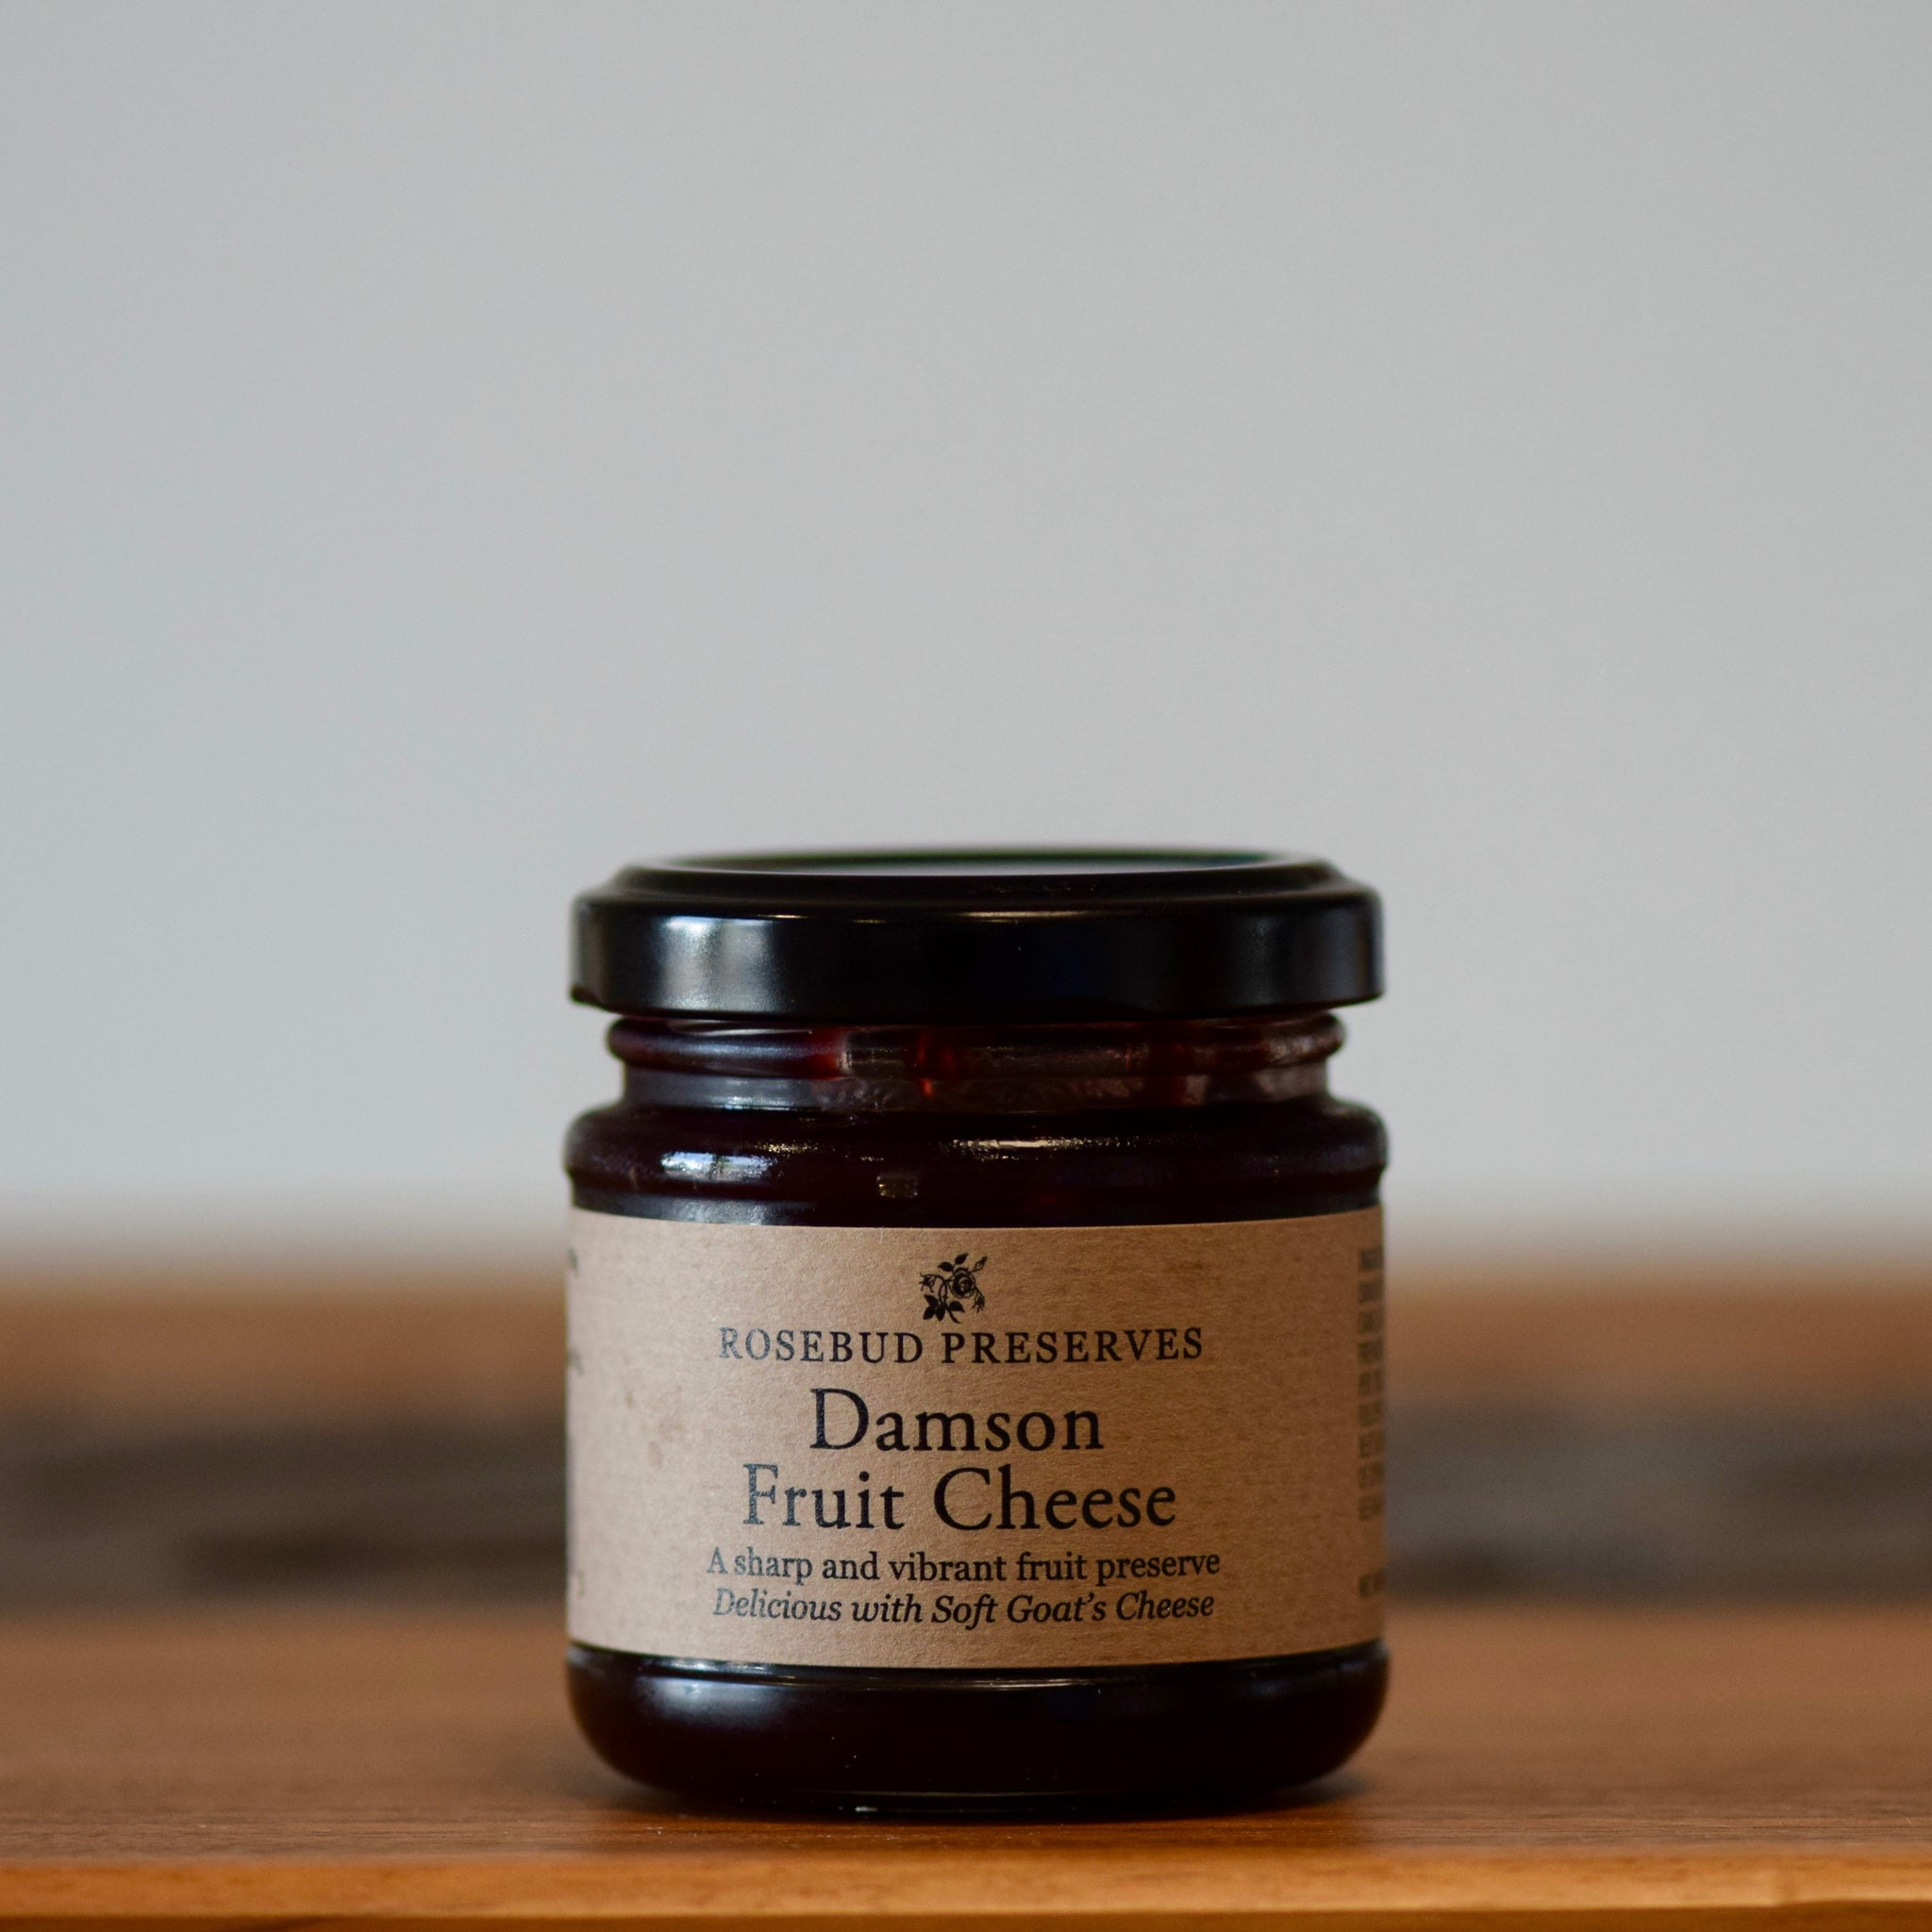 Damson Fruit Cheese